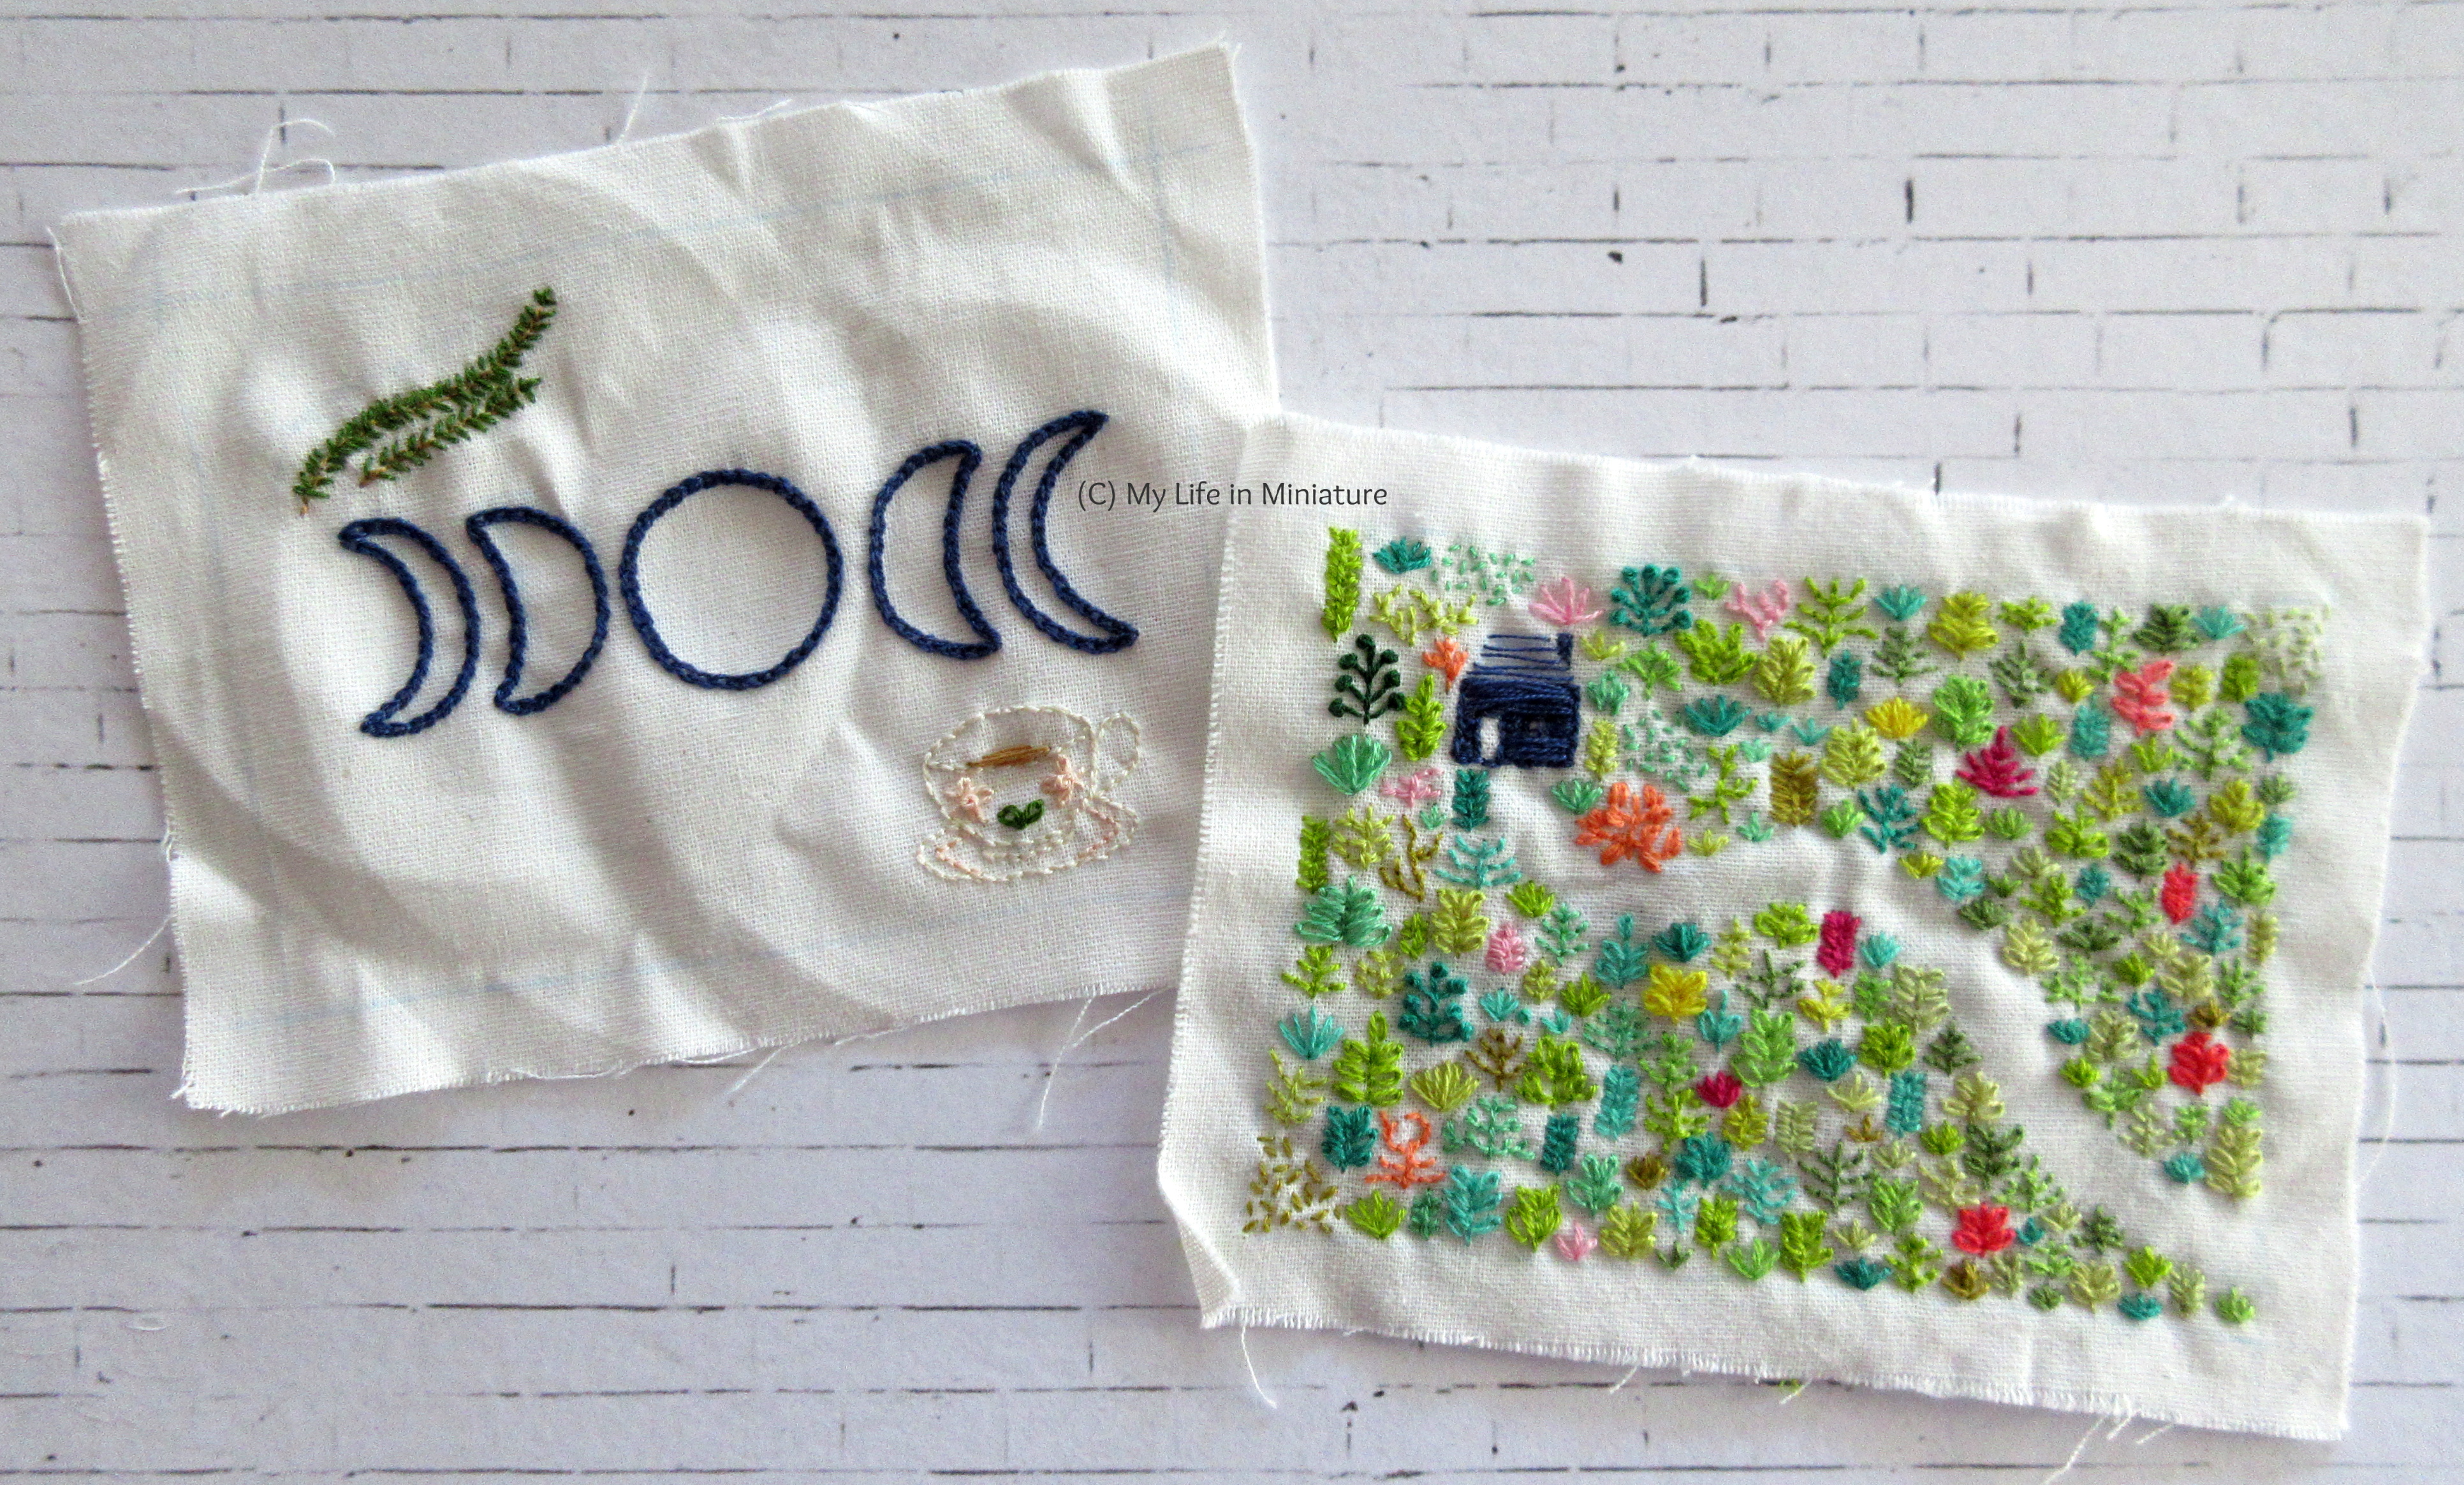 Two squares of white fabric sit on a white brick background. One has a small forest embroidered on, with a small navy blue house in the middle and a path leading to the bottom-right. The other has five moons in navy blue, a teacup, and some rosemary embroidered on.